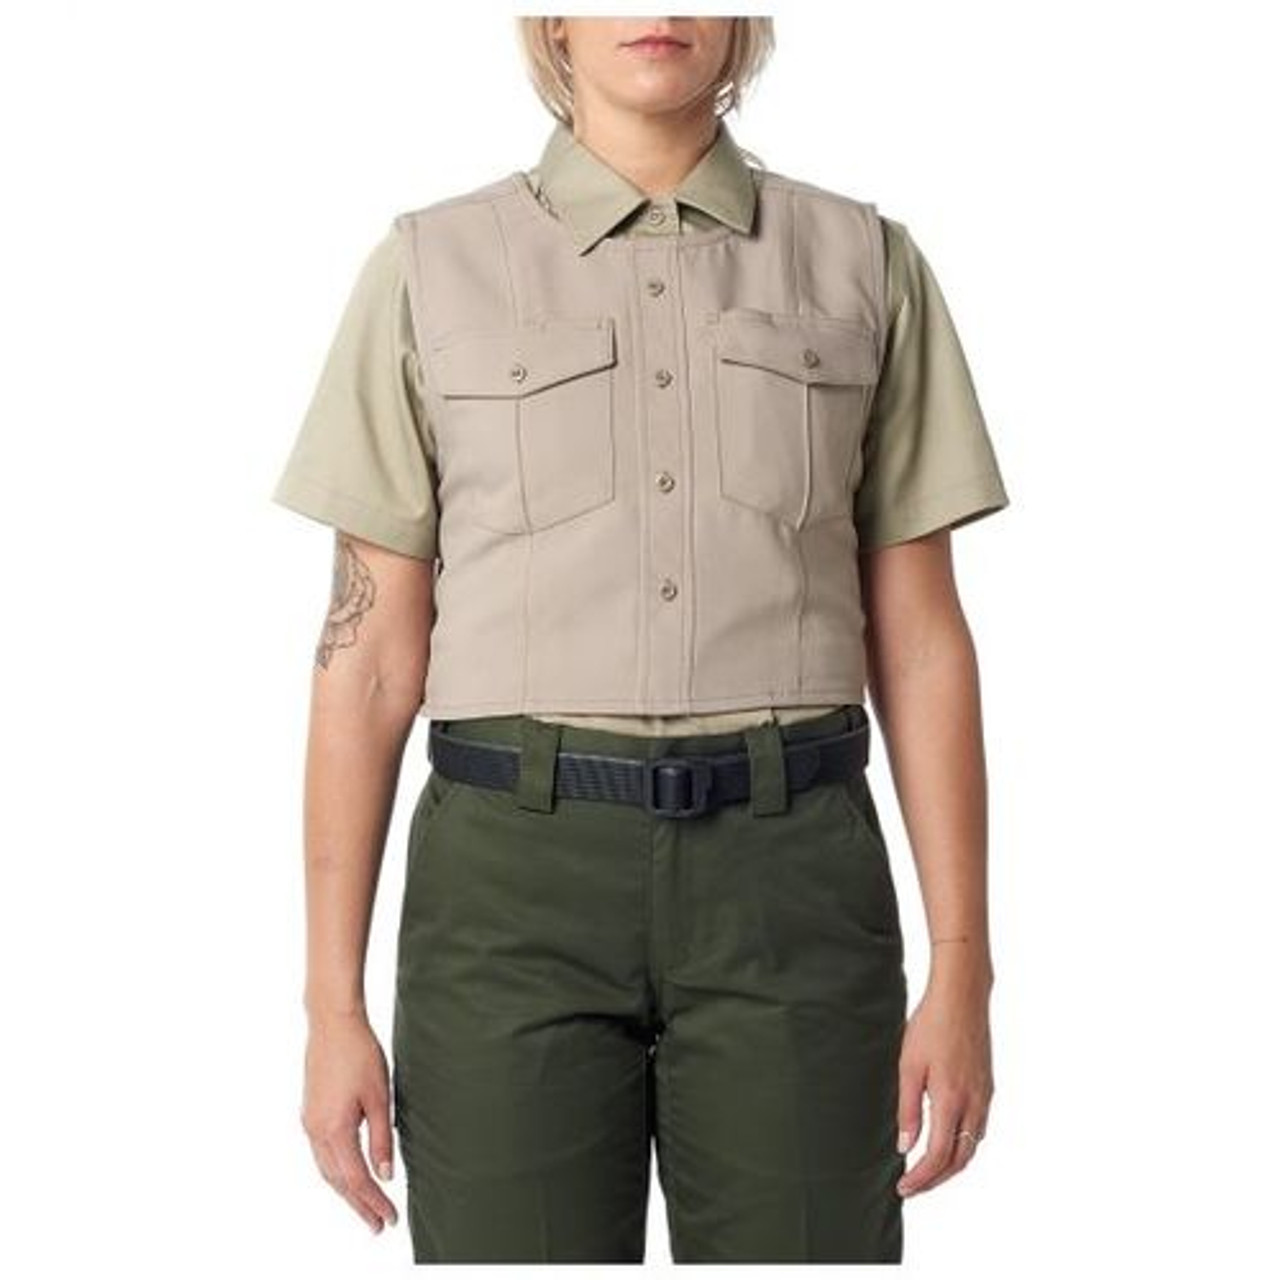 5.11 Tactical Women's Uniform Outer Carrier - Class A, available in Midnight Navy, Silver Tan, or Black 49033